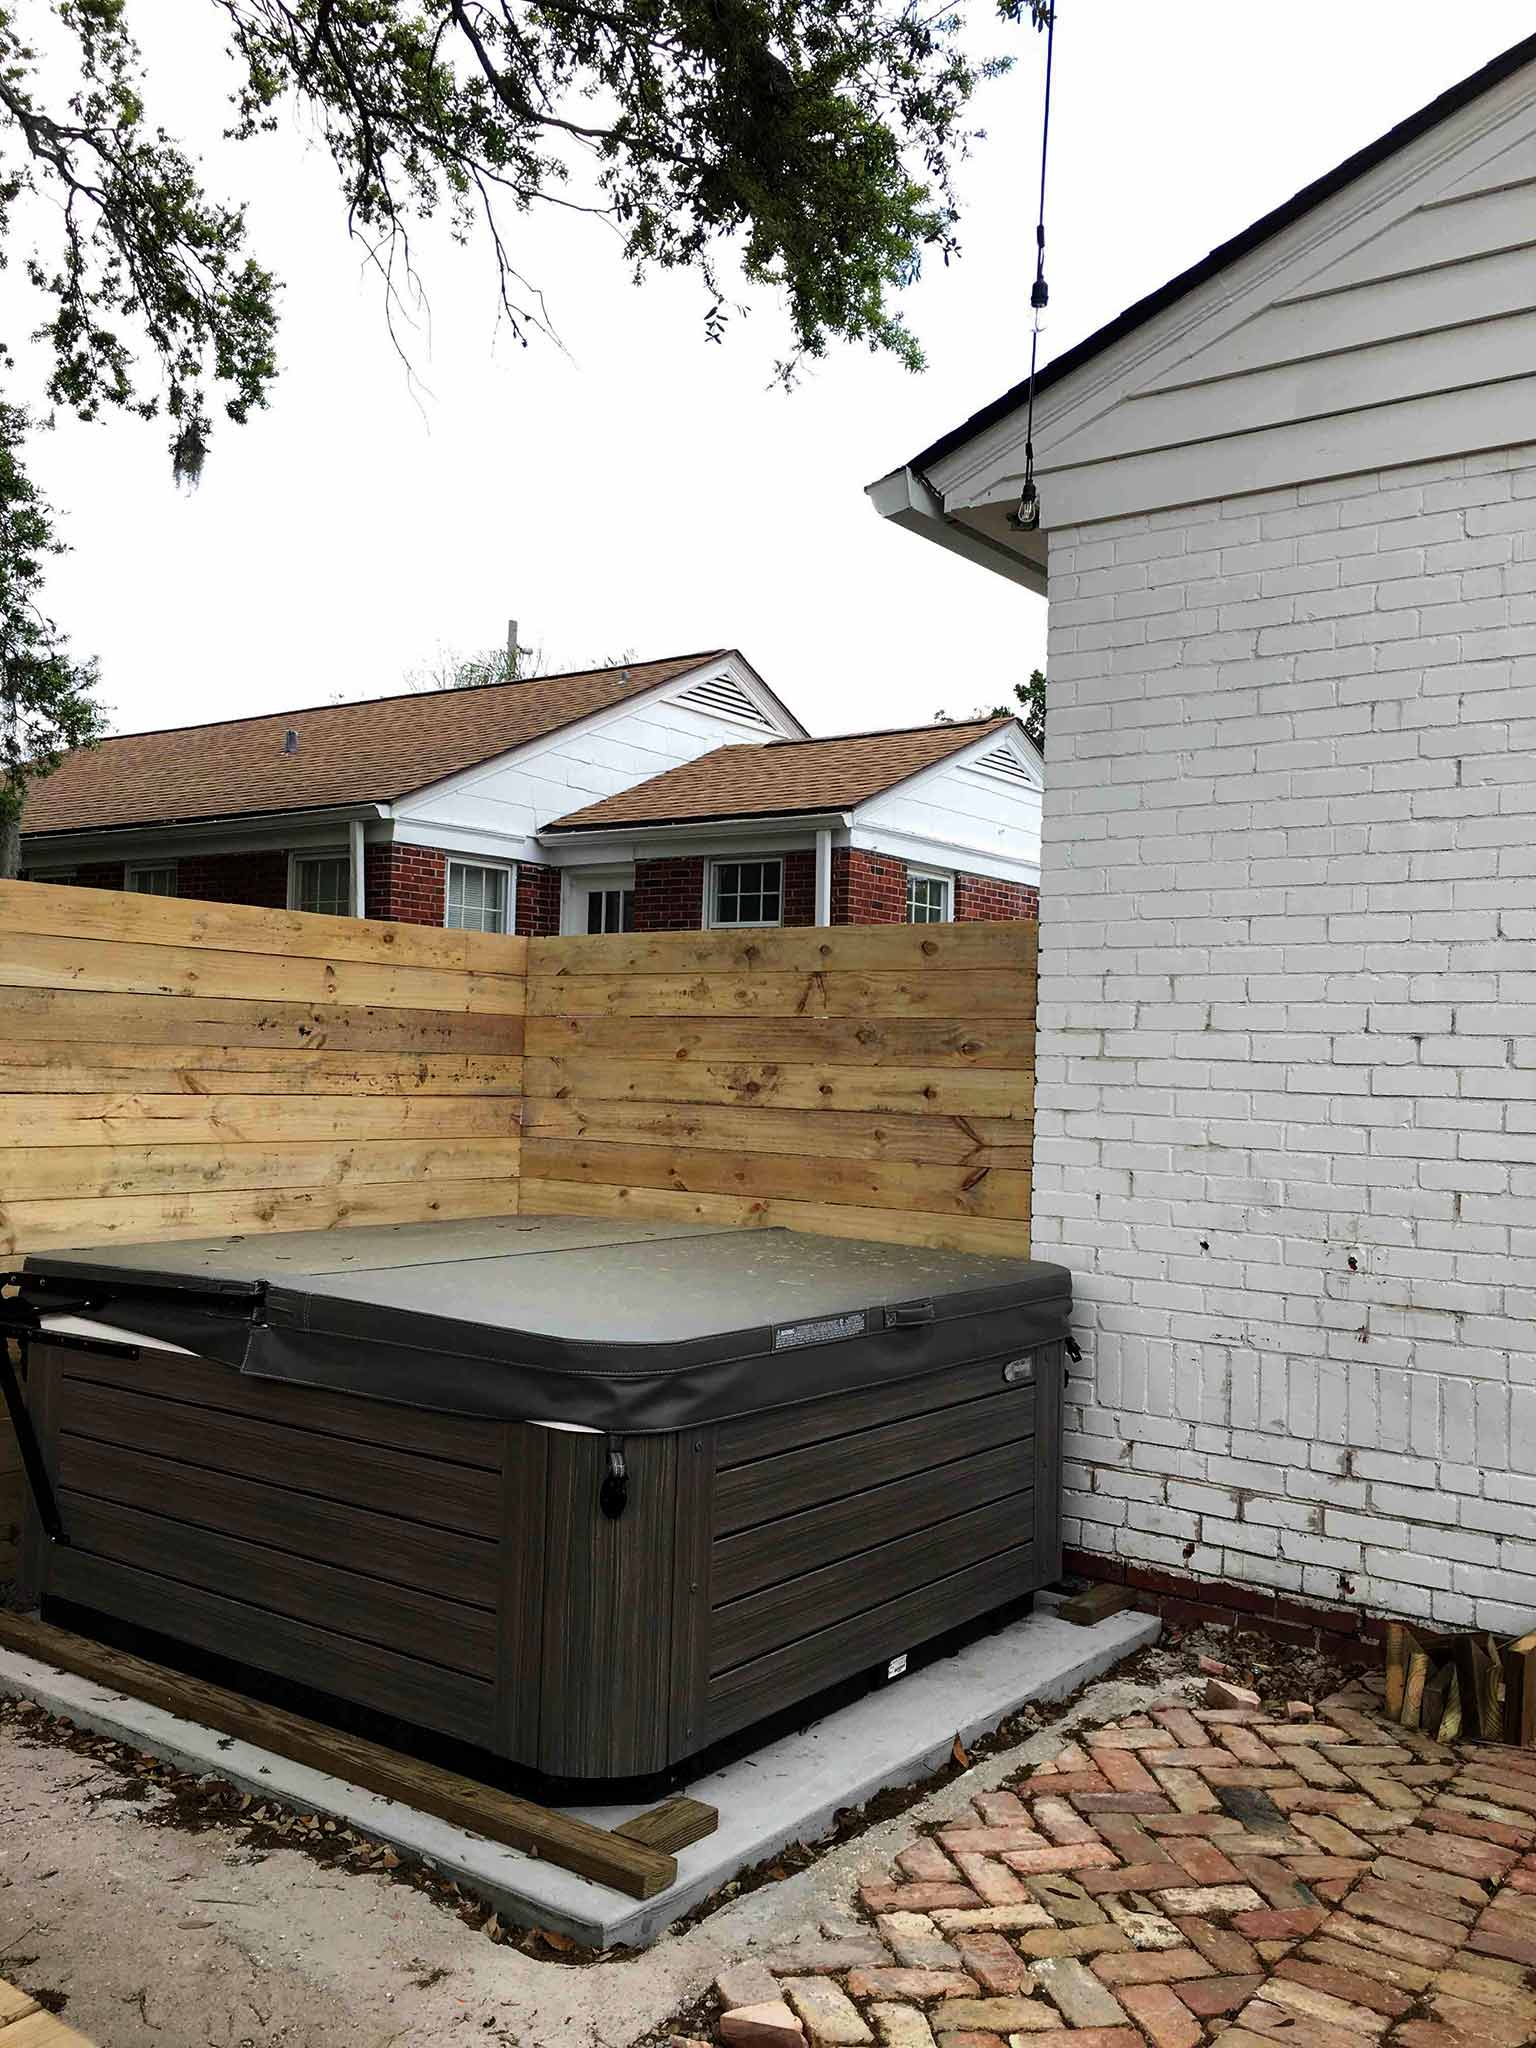 Backyard in progress - hot tub installation - That Homebird Life Blog